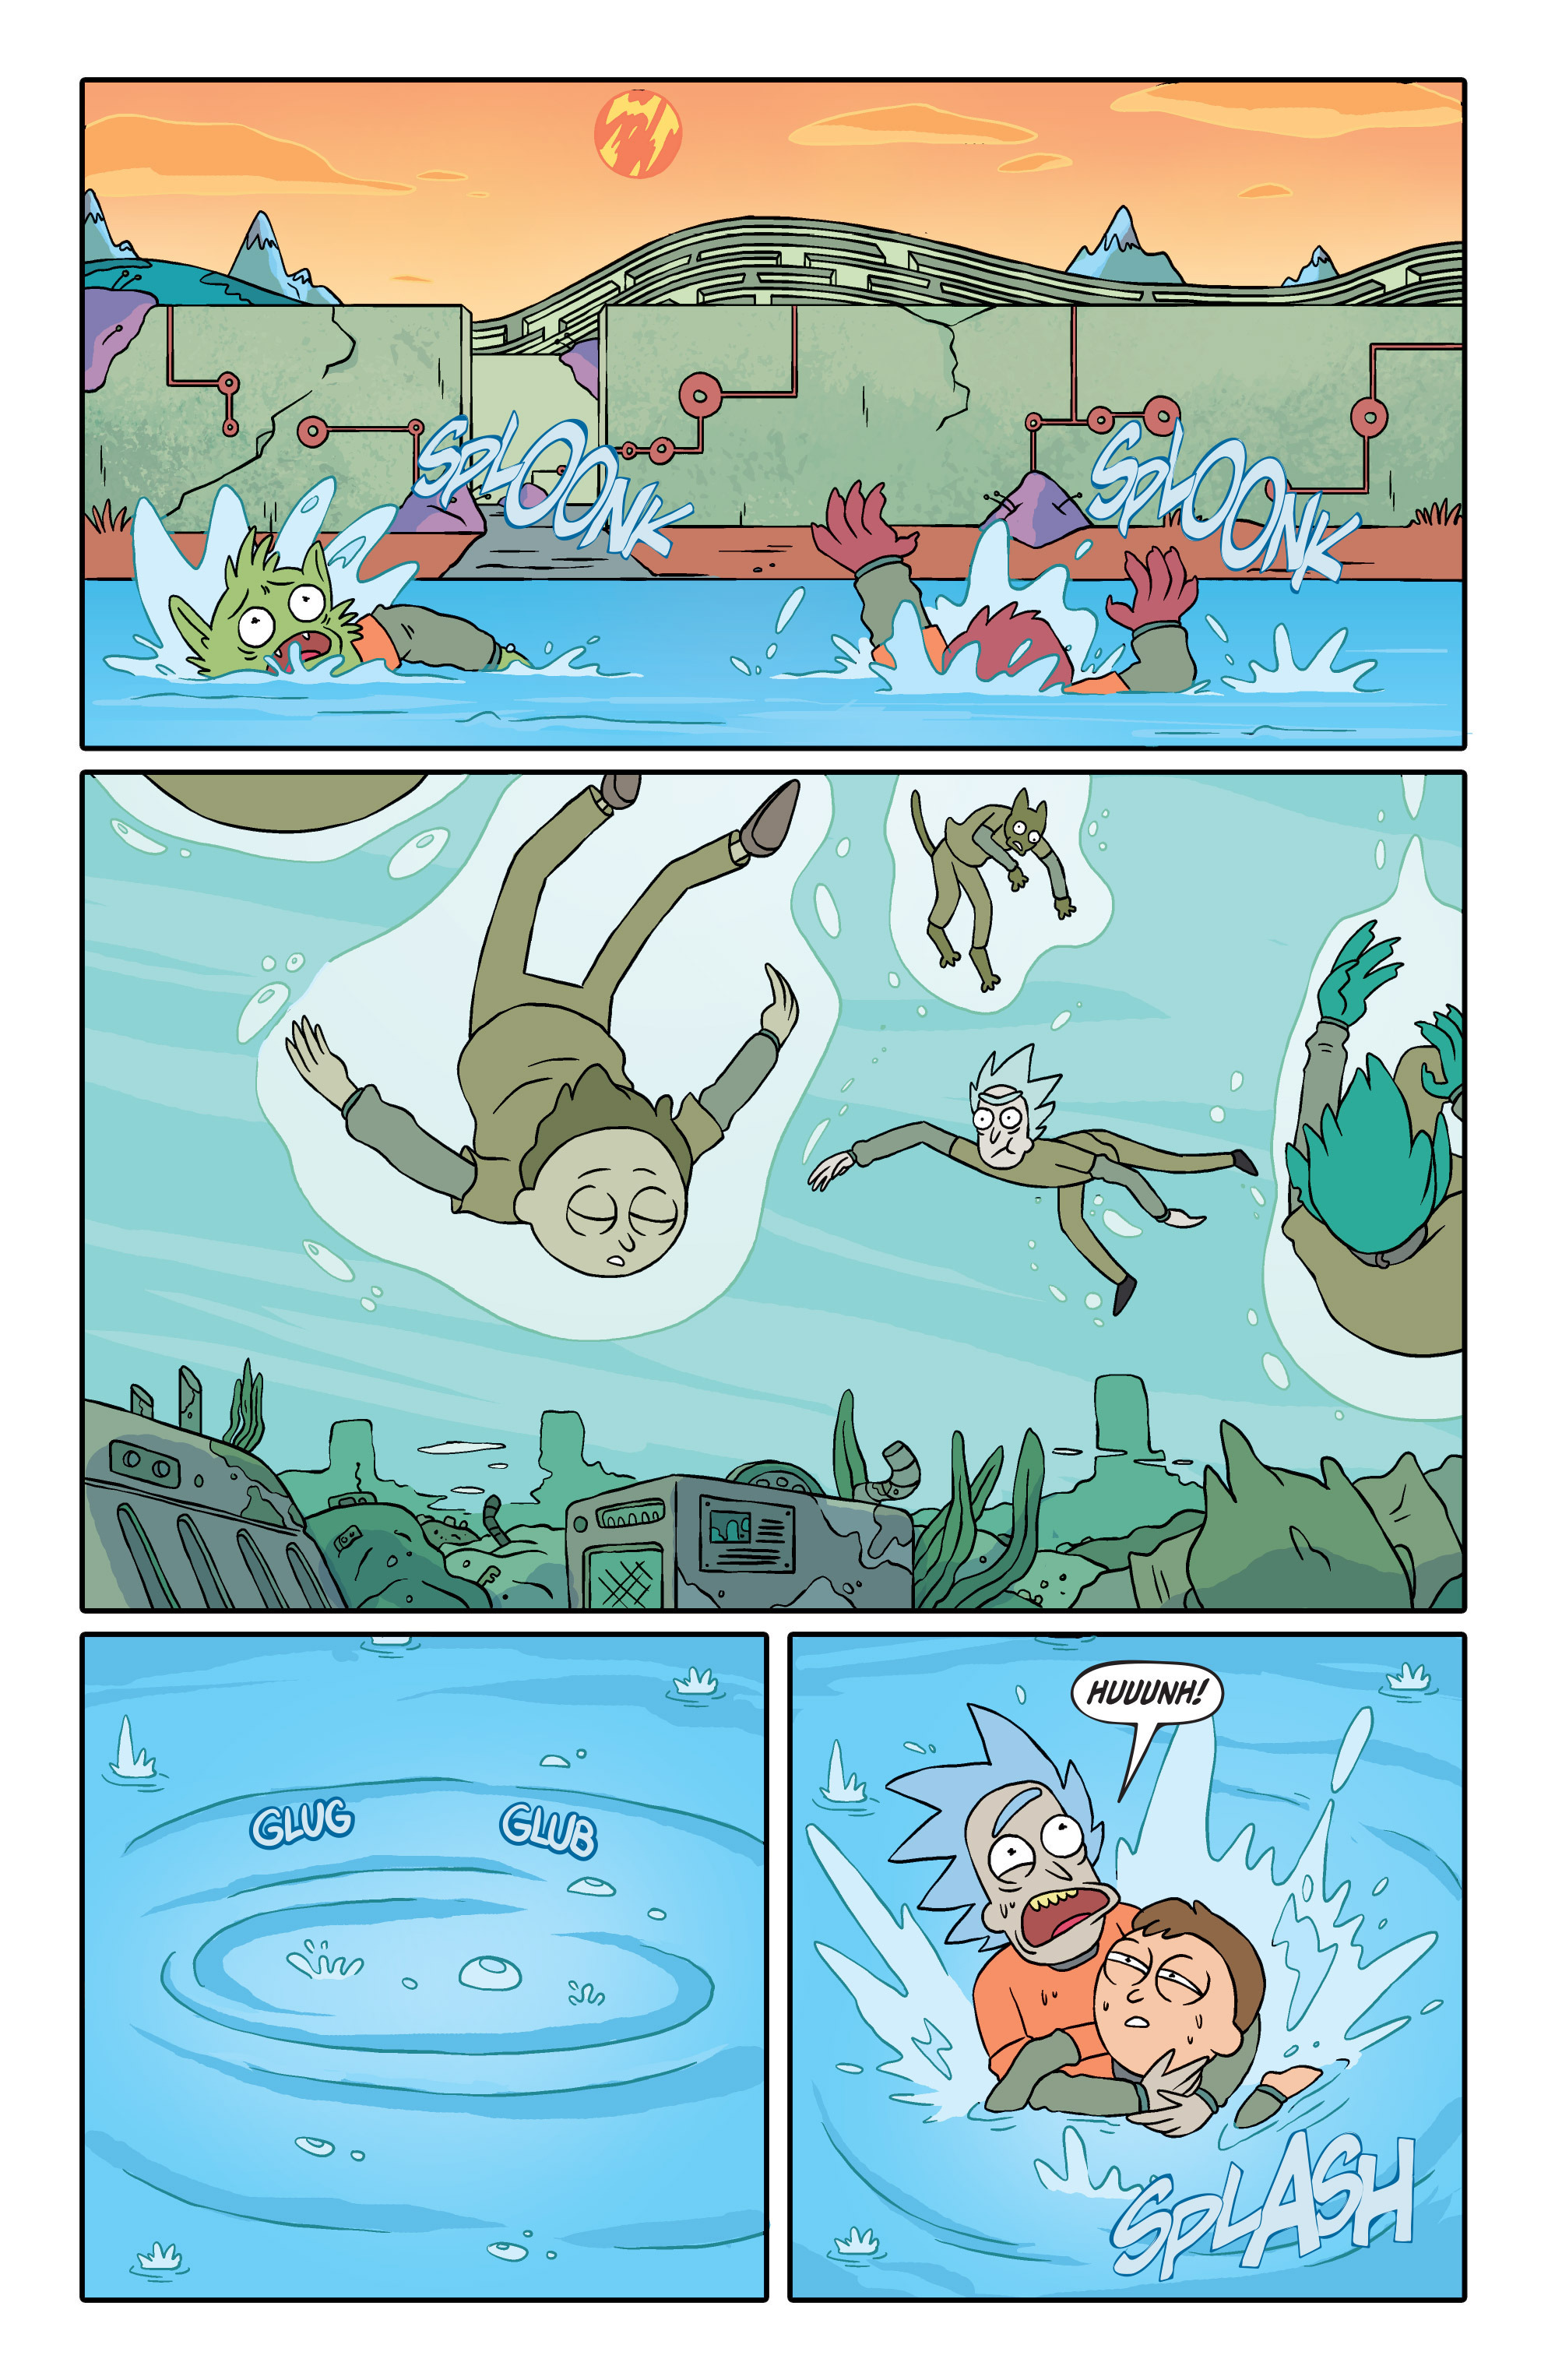 Rick and Morty Issue 2 | Rick and Morty Wiki | FANDOM